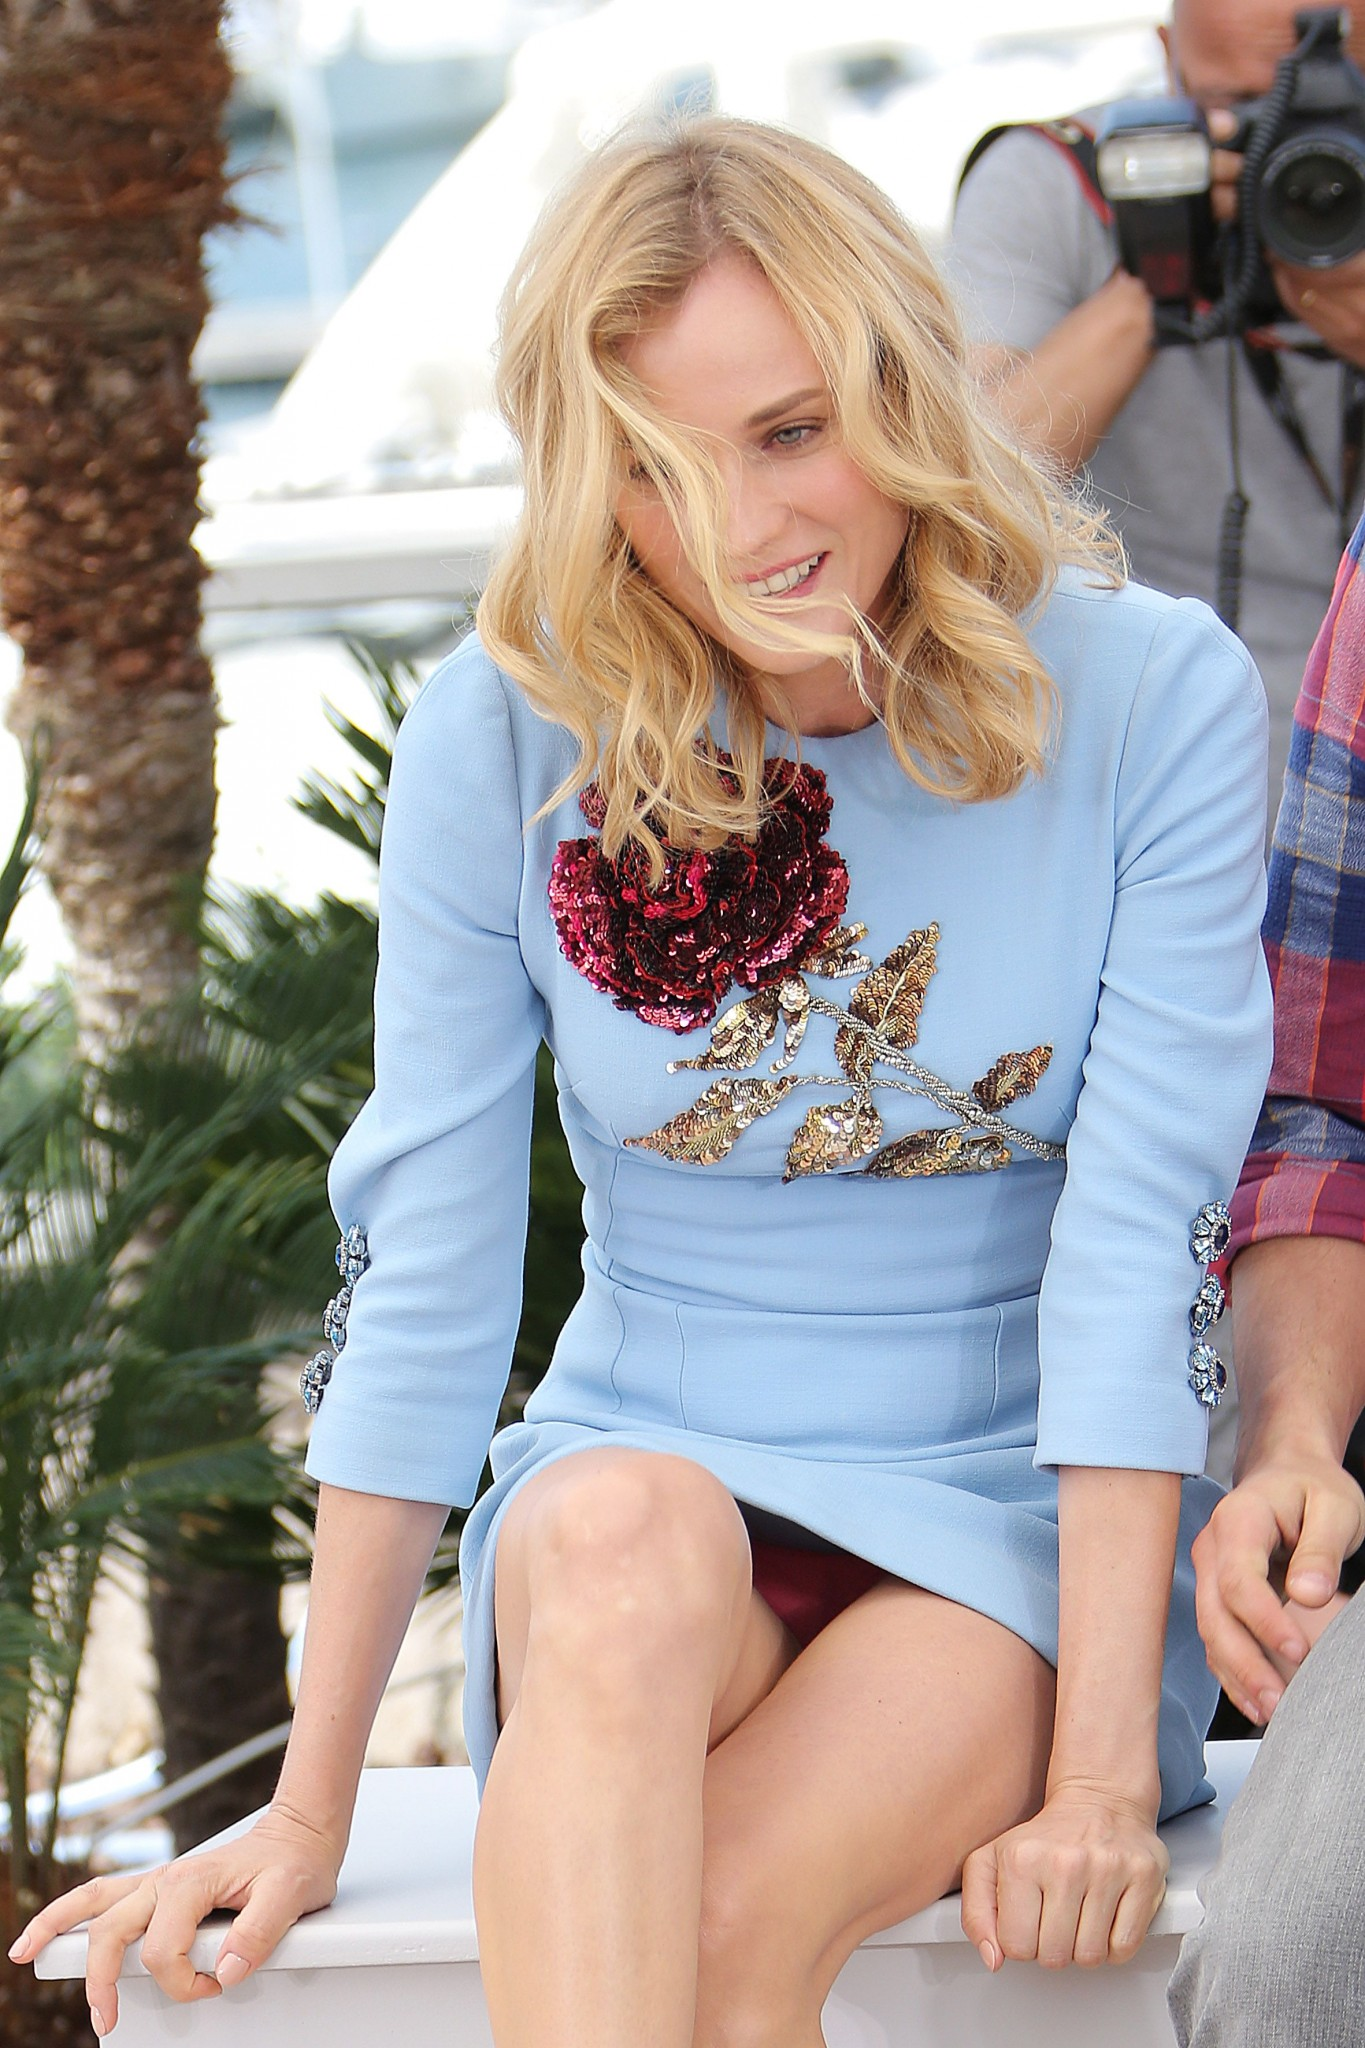 diane-kruger-upskirt-in-cannes-9